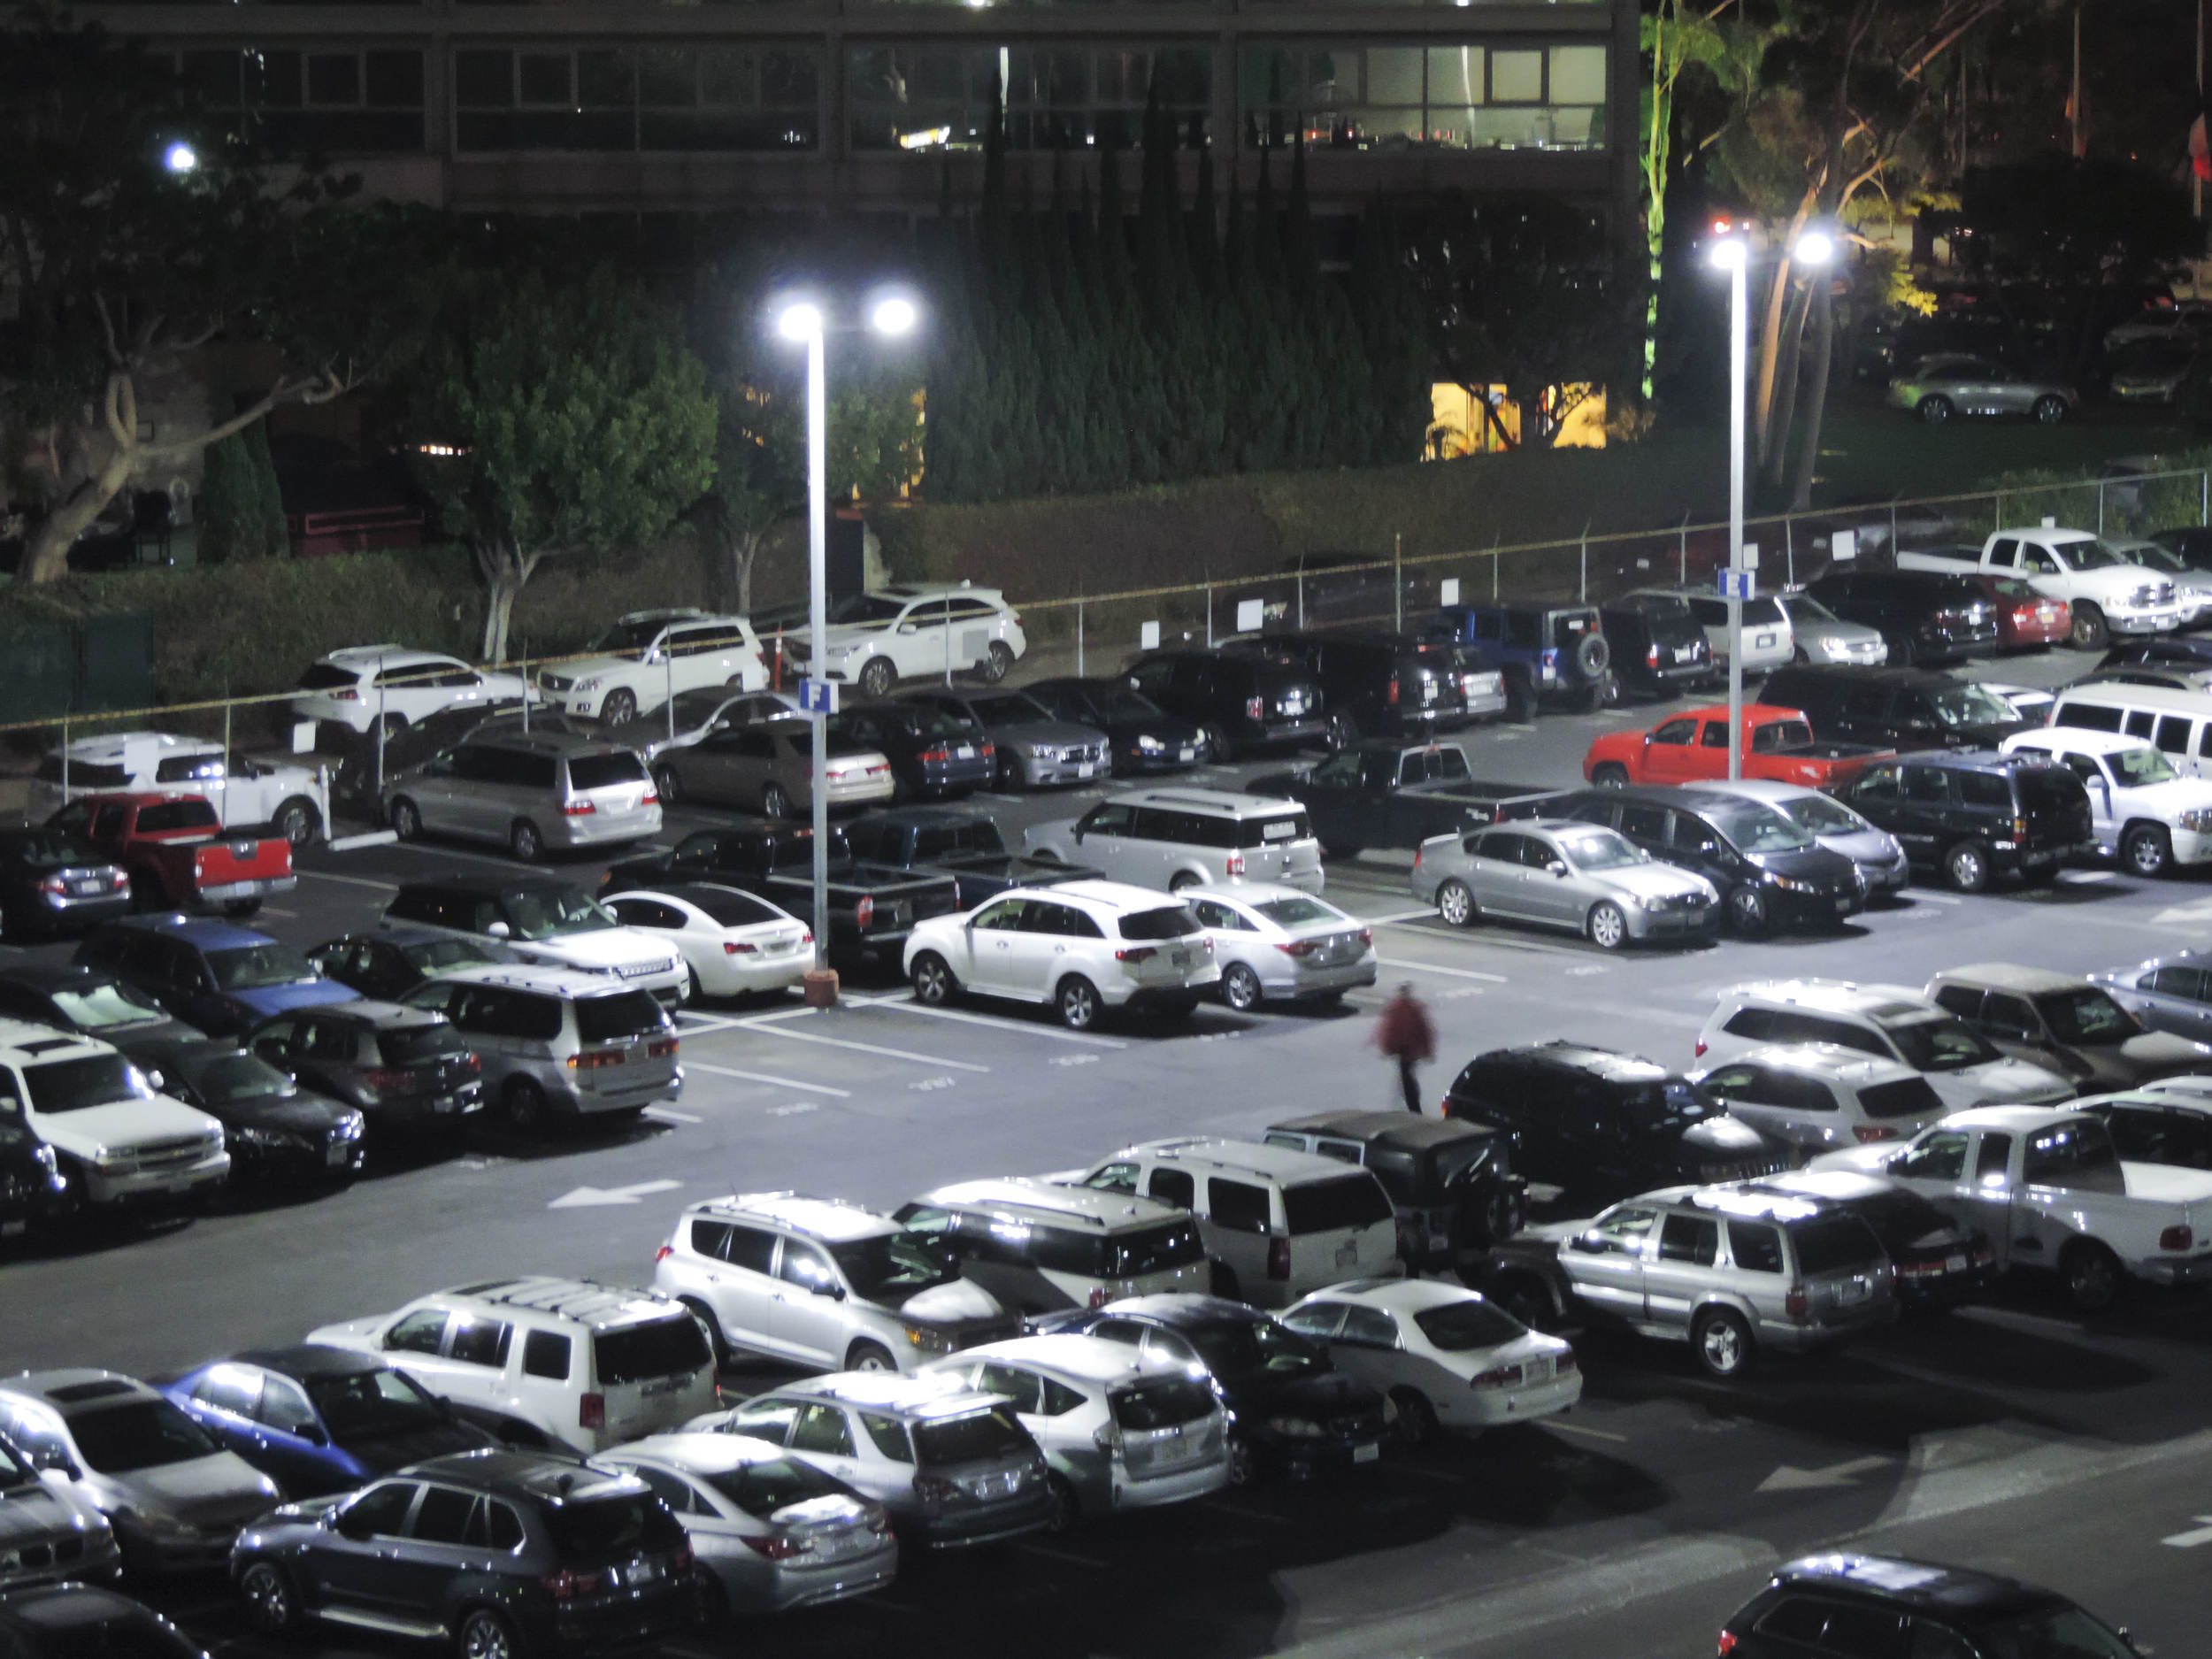 Awaken LED Lighting - Parking Lots - JOE'S PARKING 05.jpg